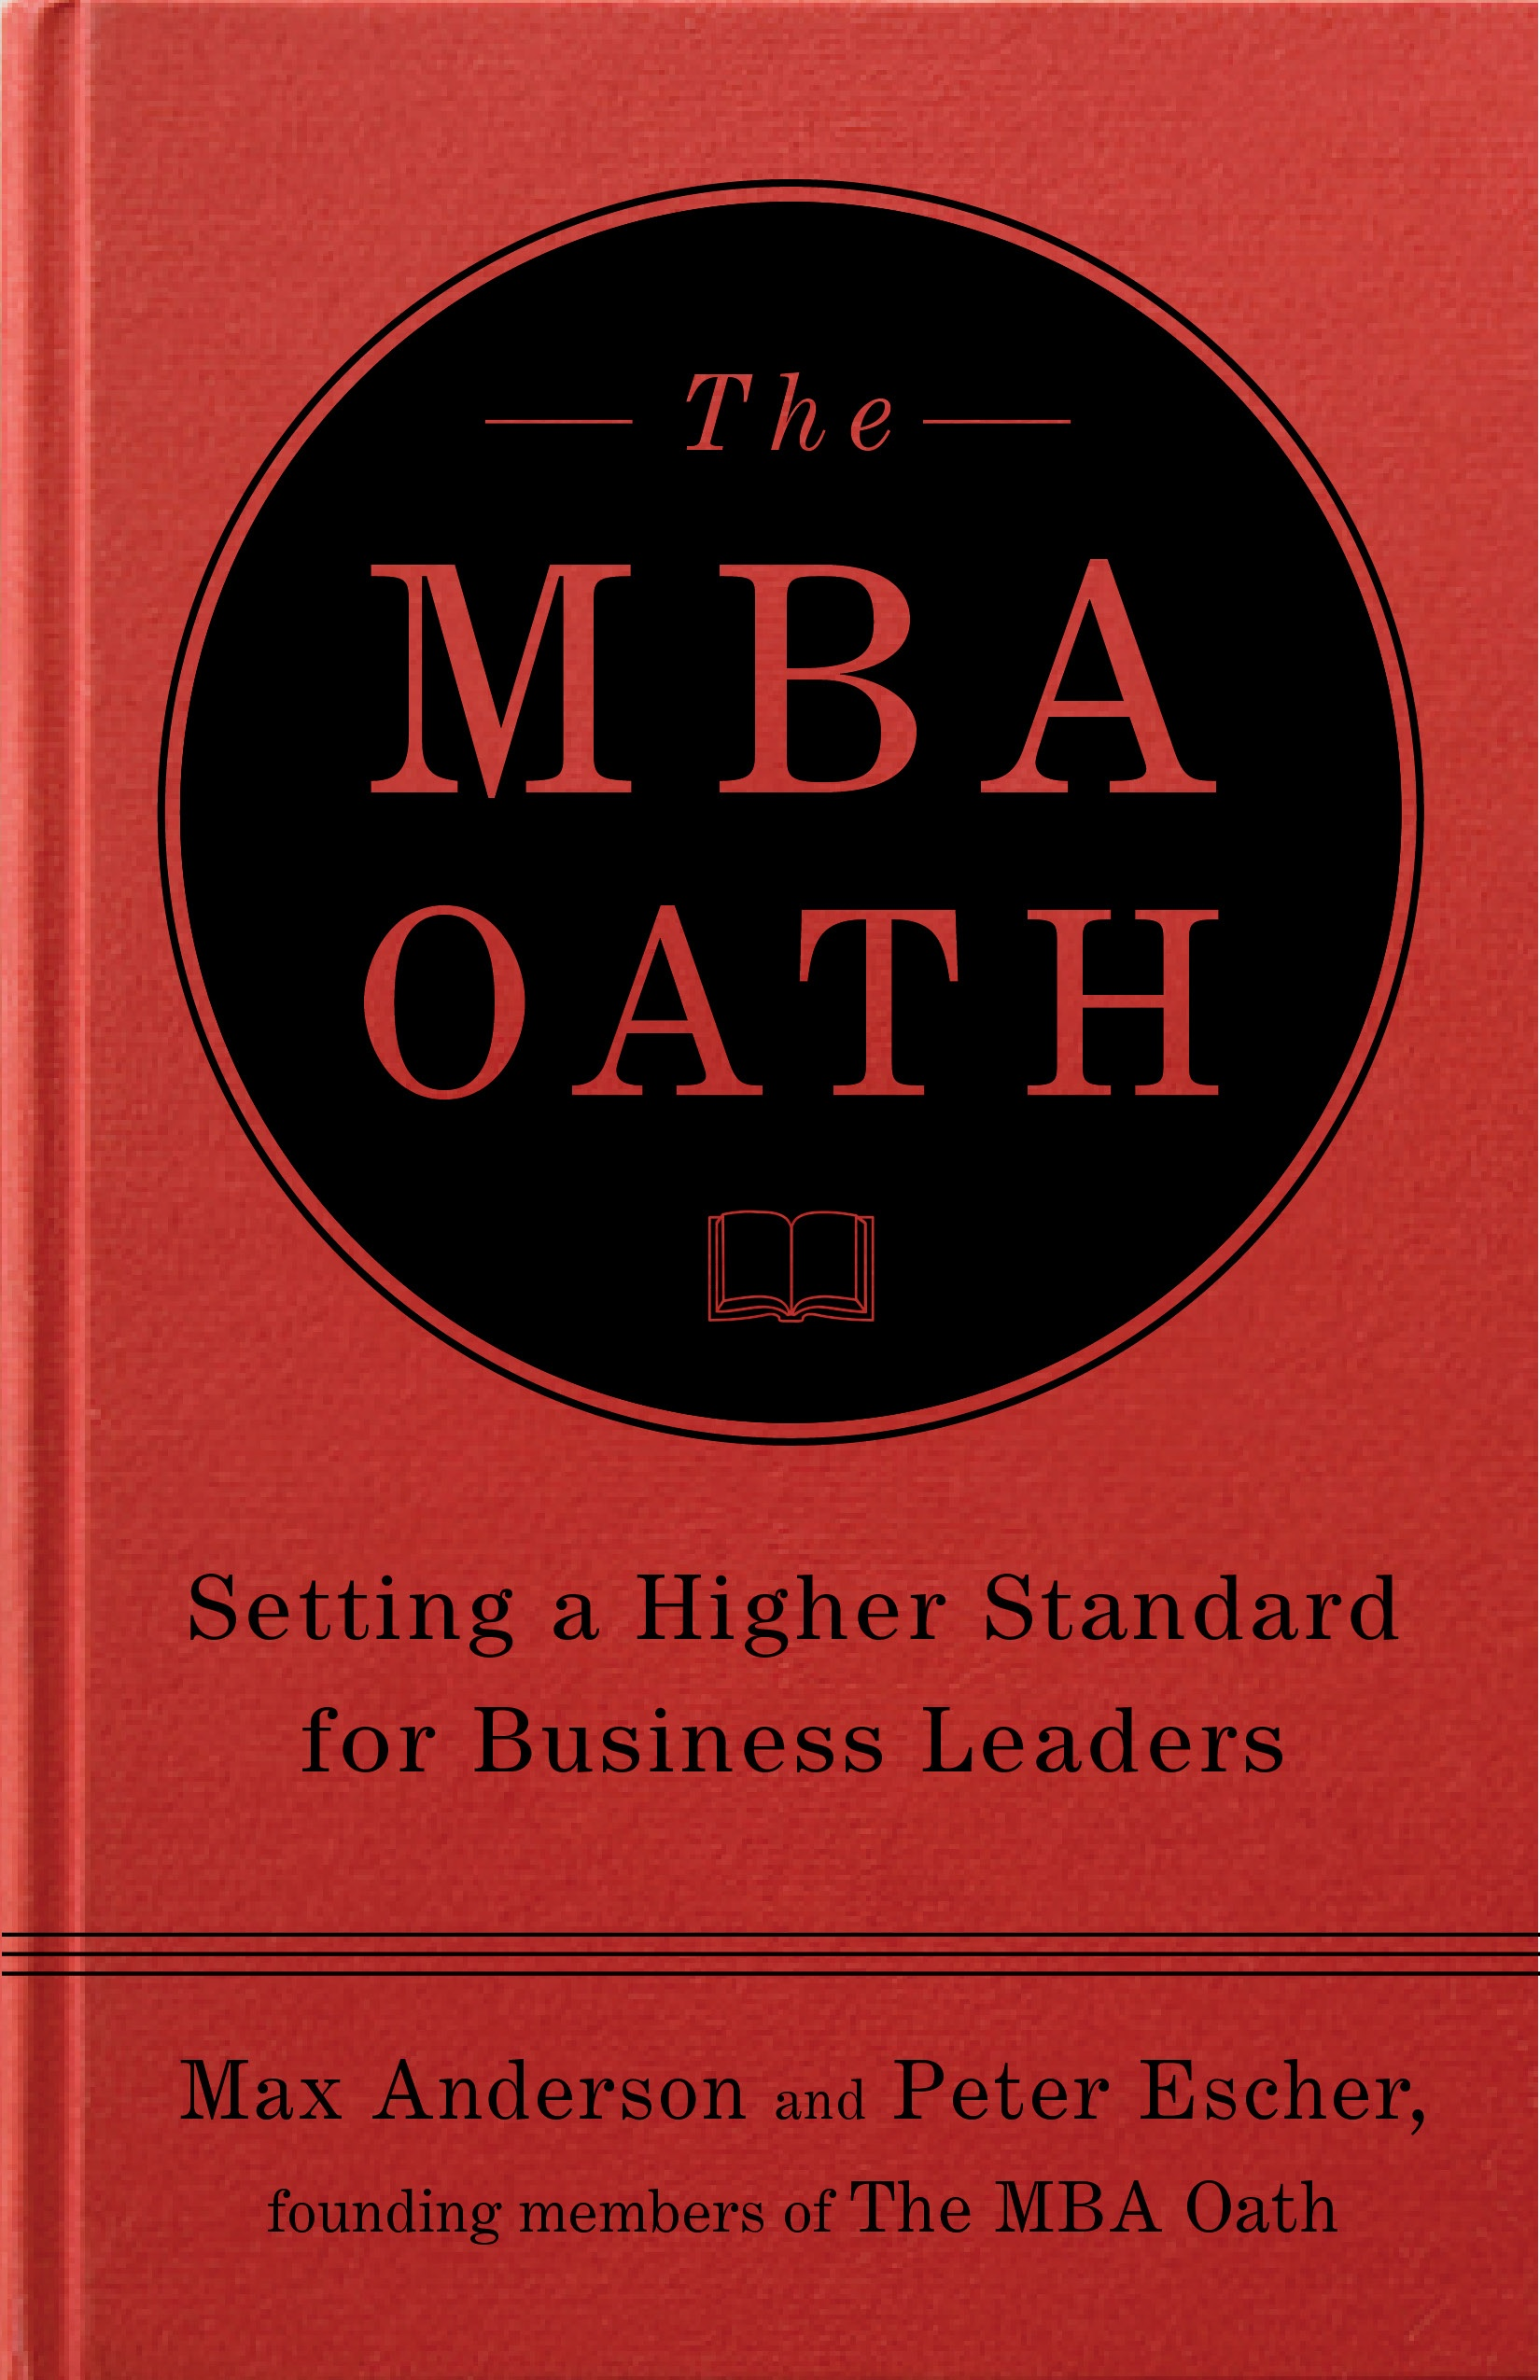 Click above to order a copy of the MBA Oath.